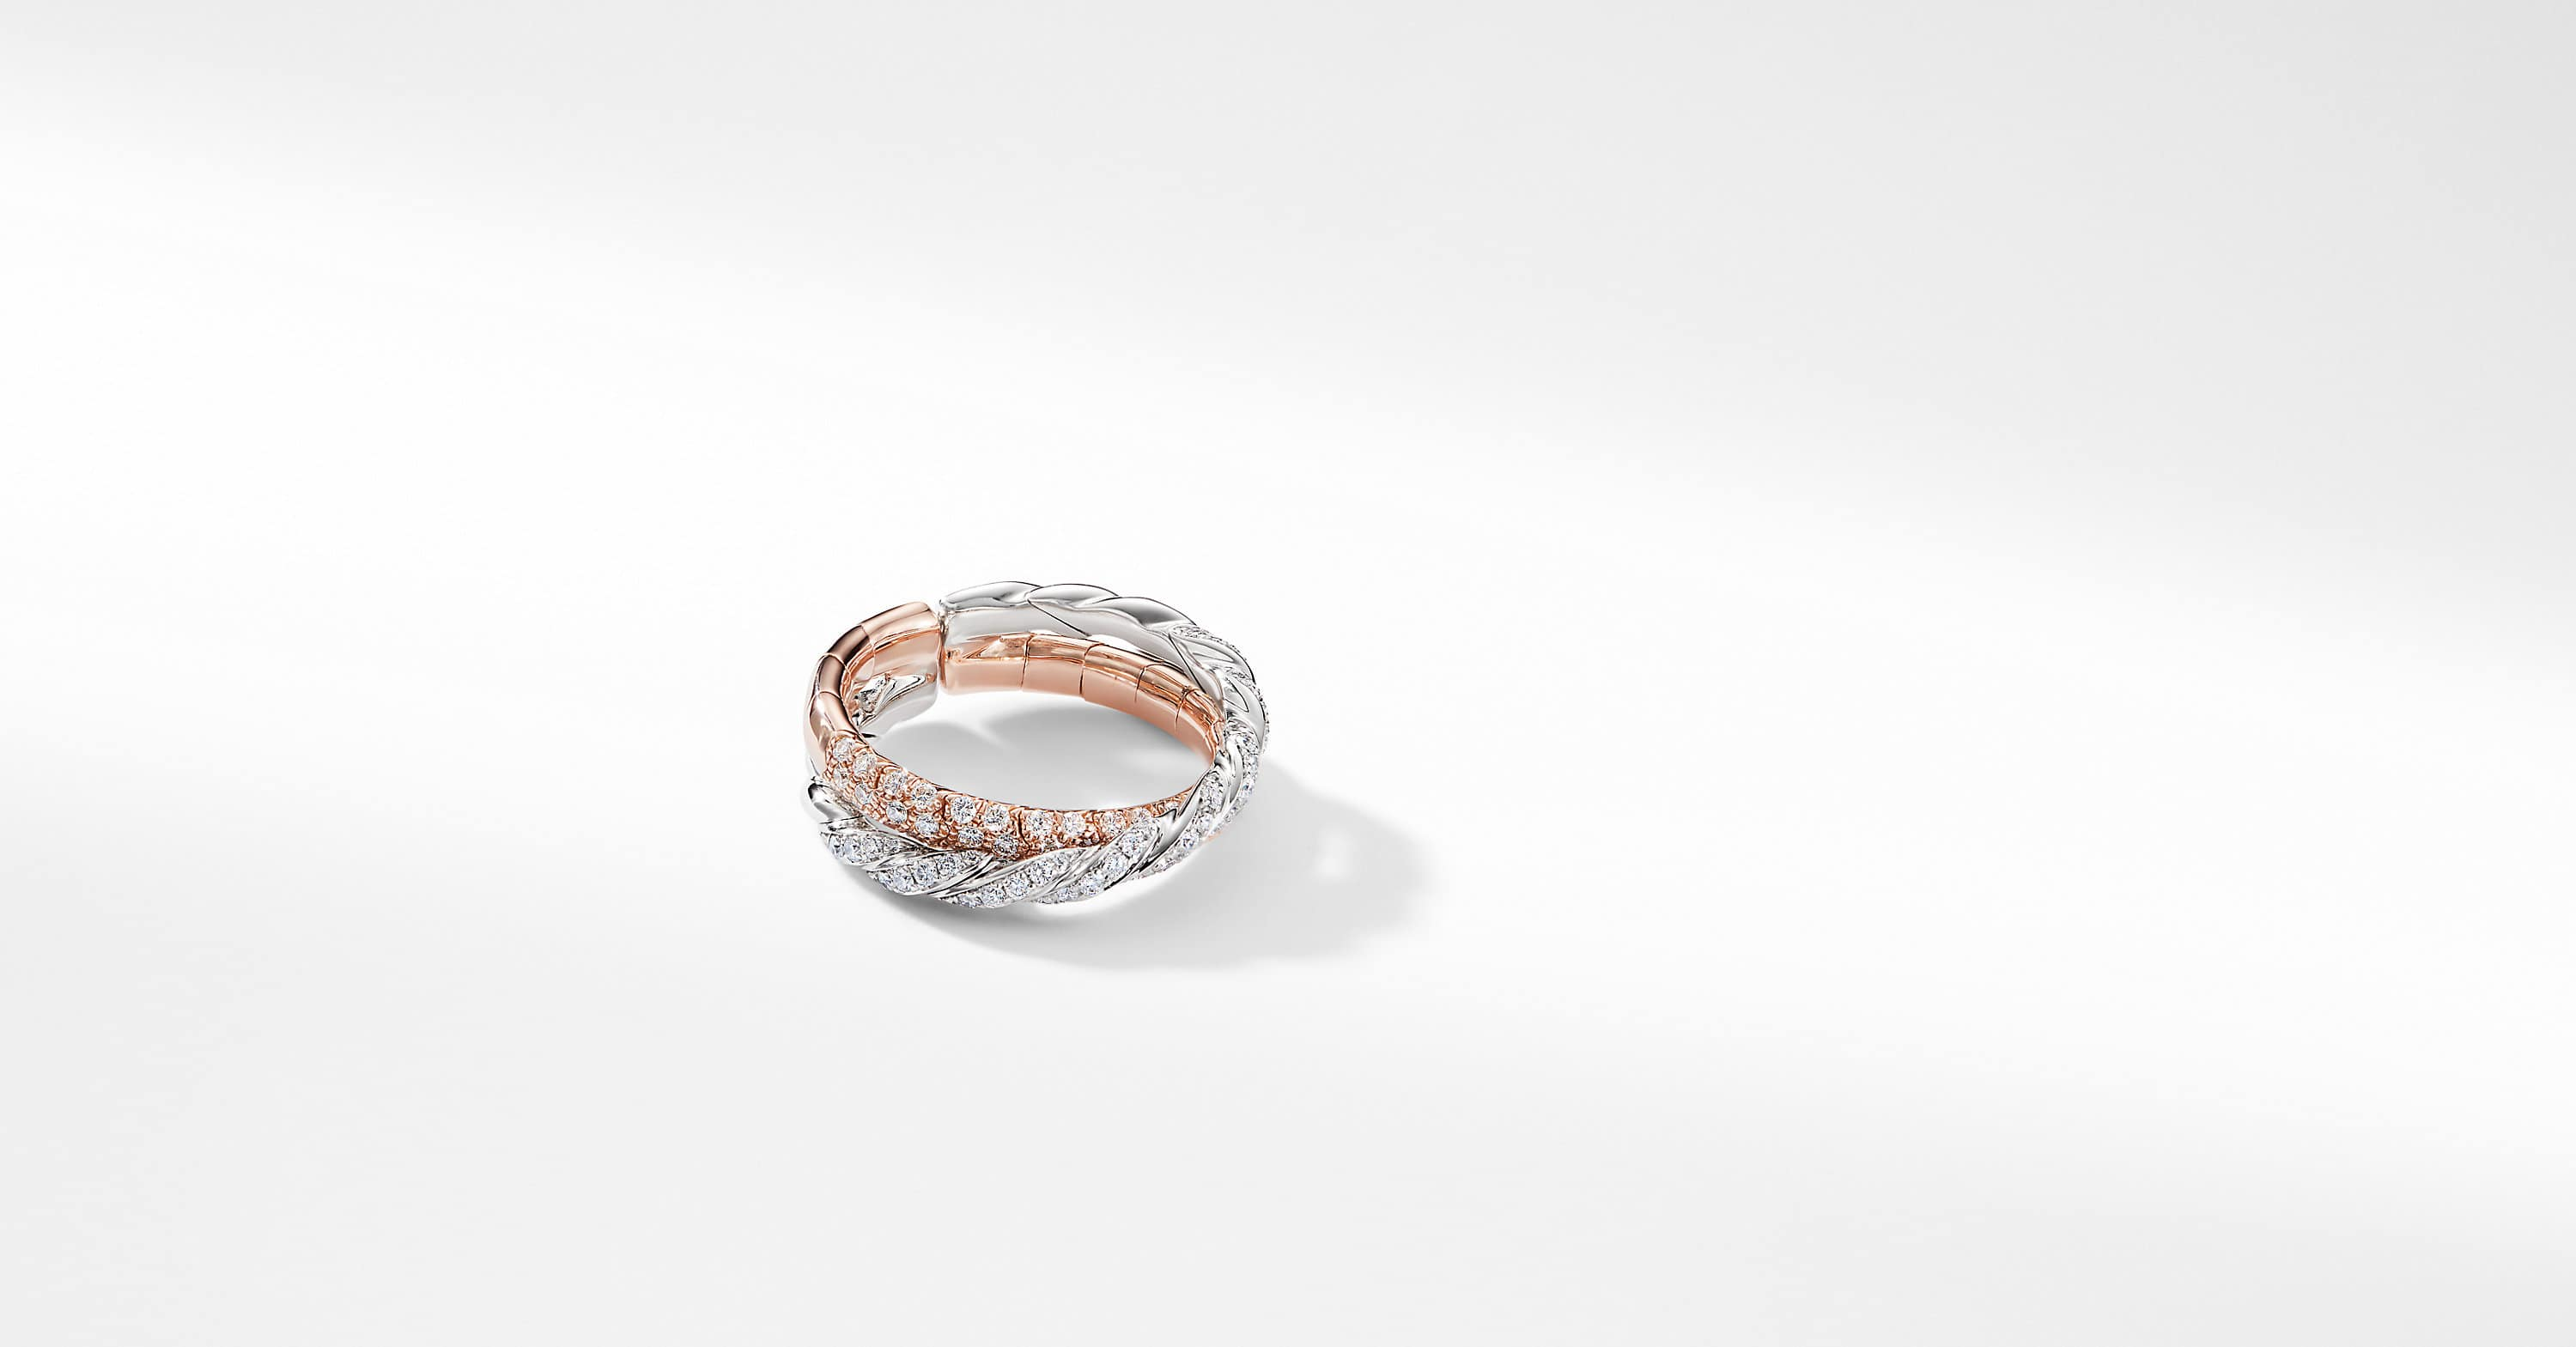 Bague Pavéflex à deux rangs en or rose et blanc 18K et diamants